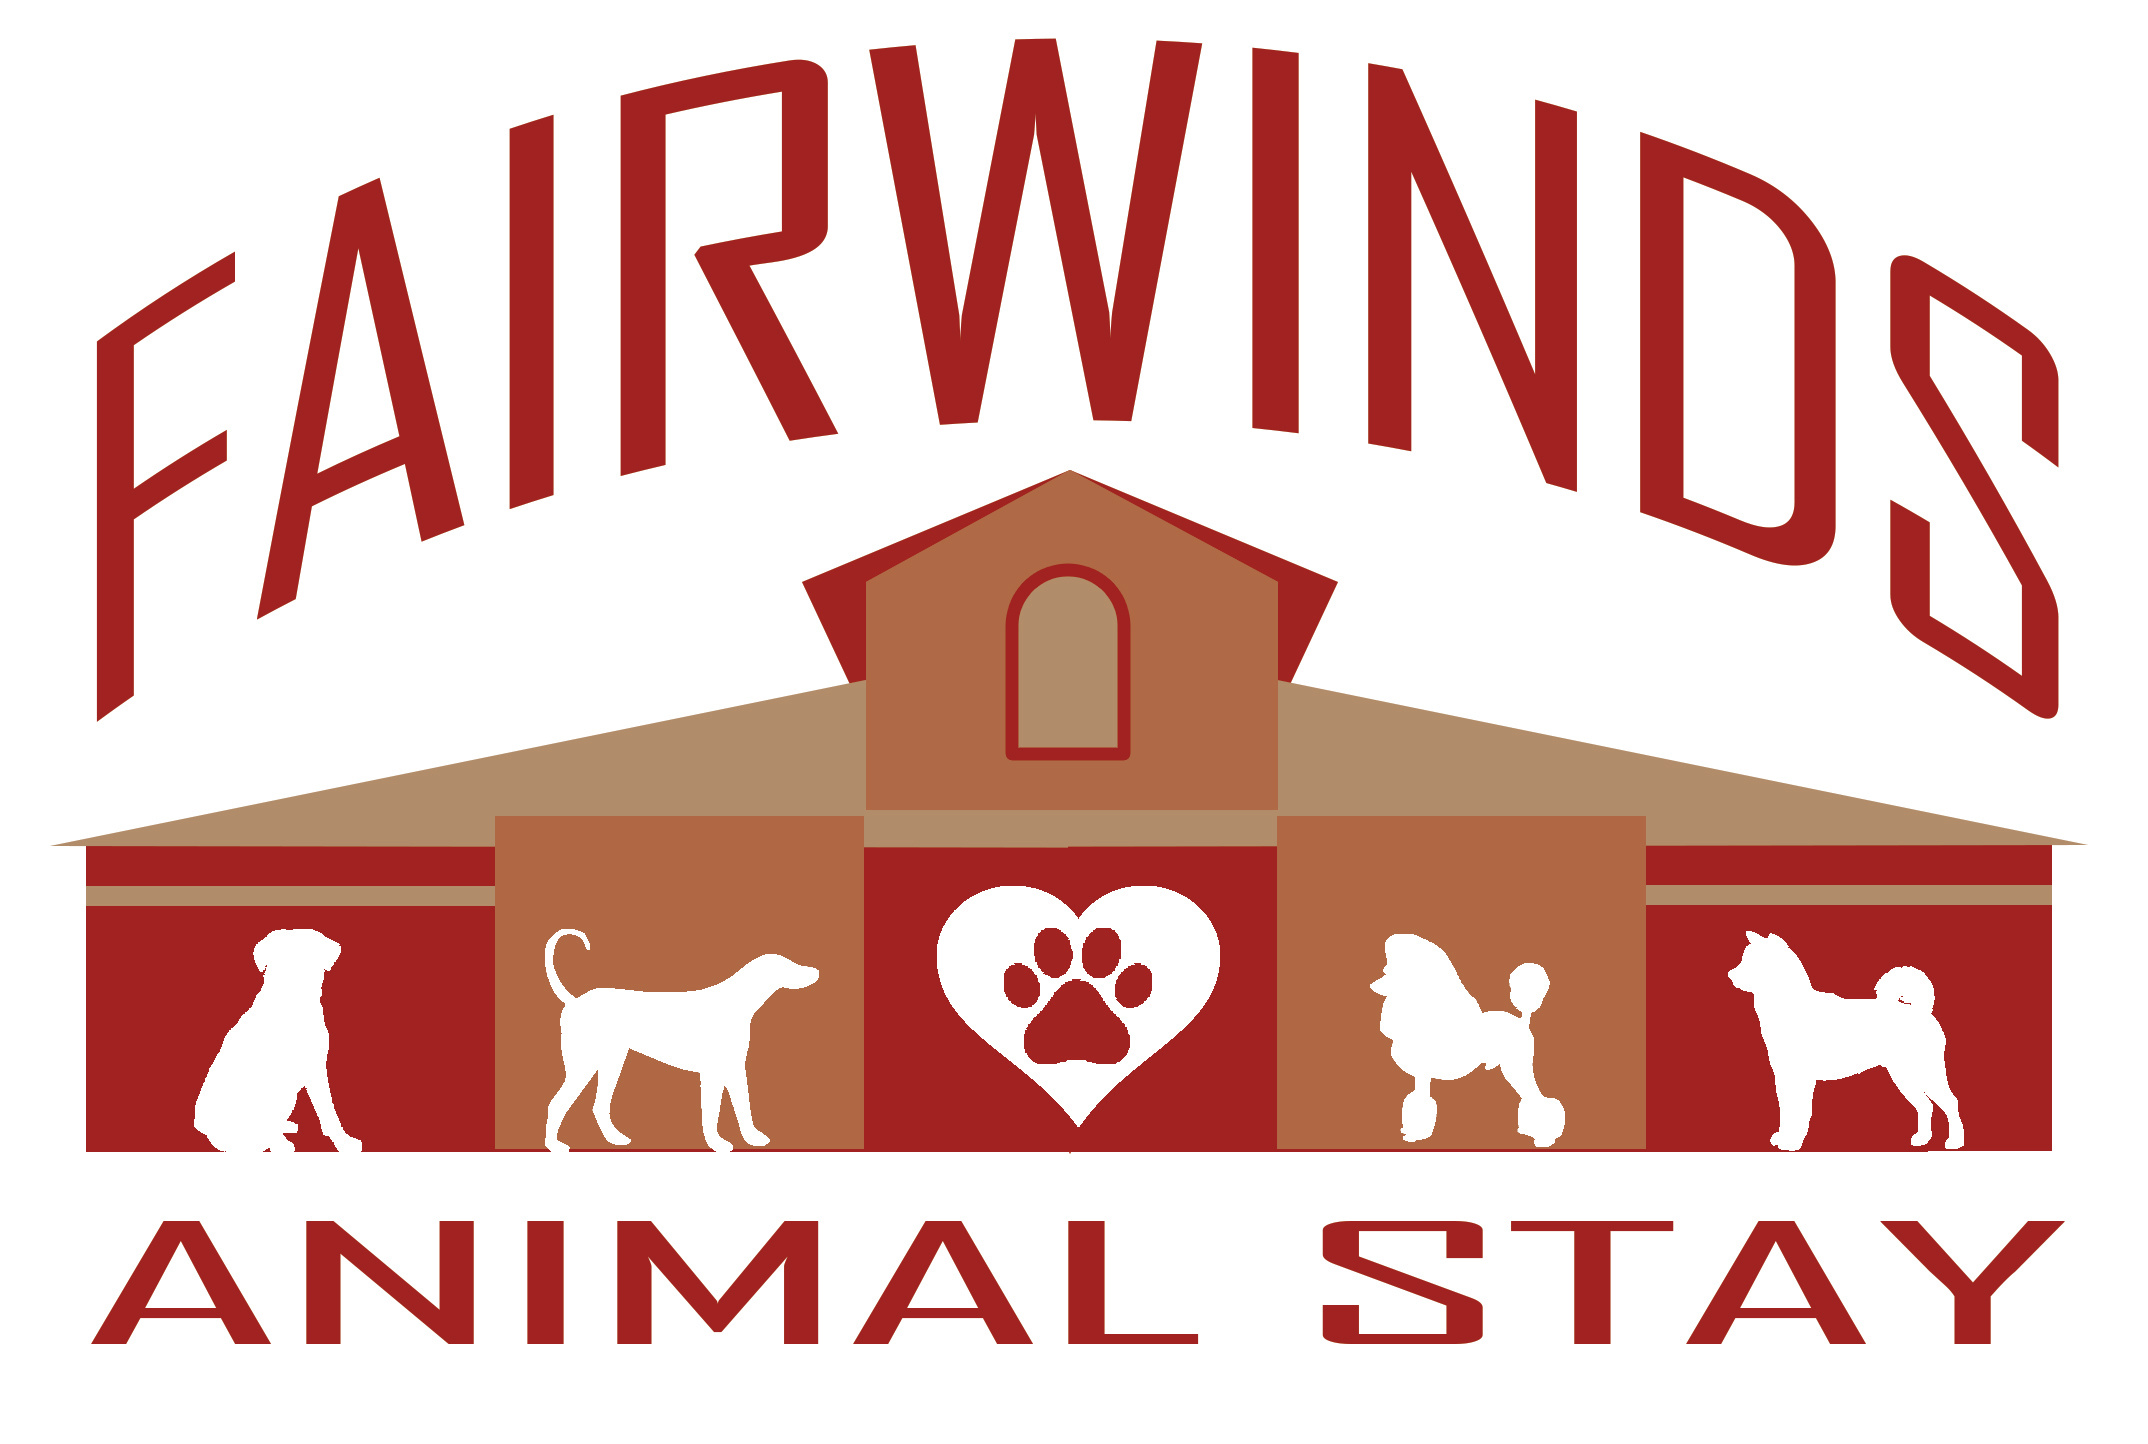 fairwinds animal stay